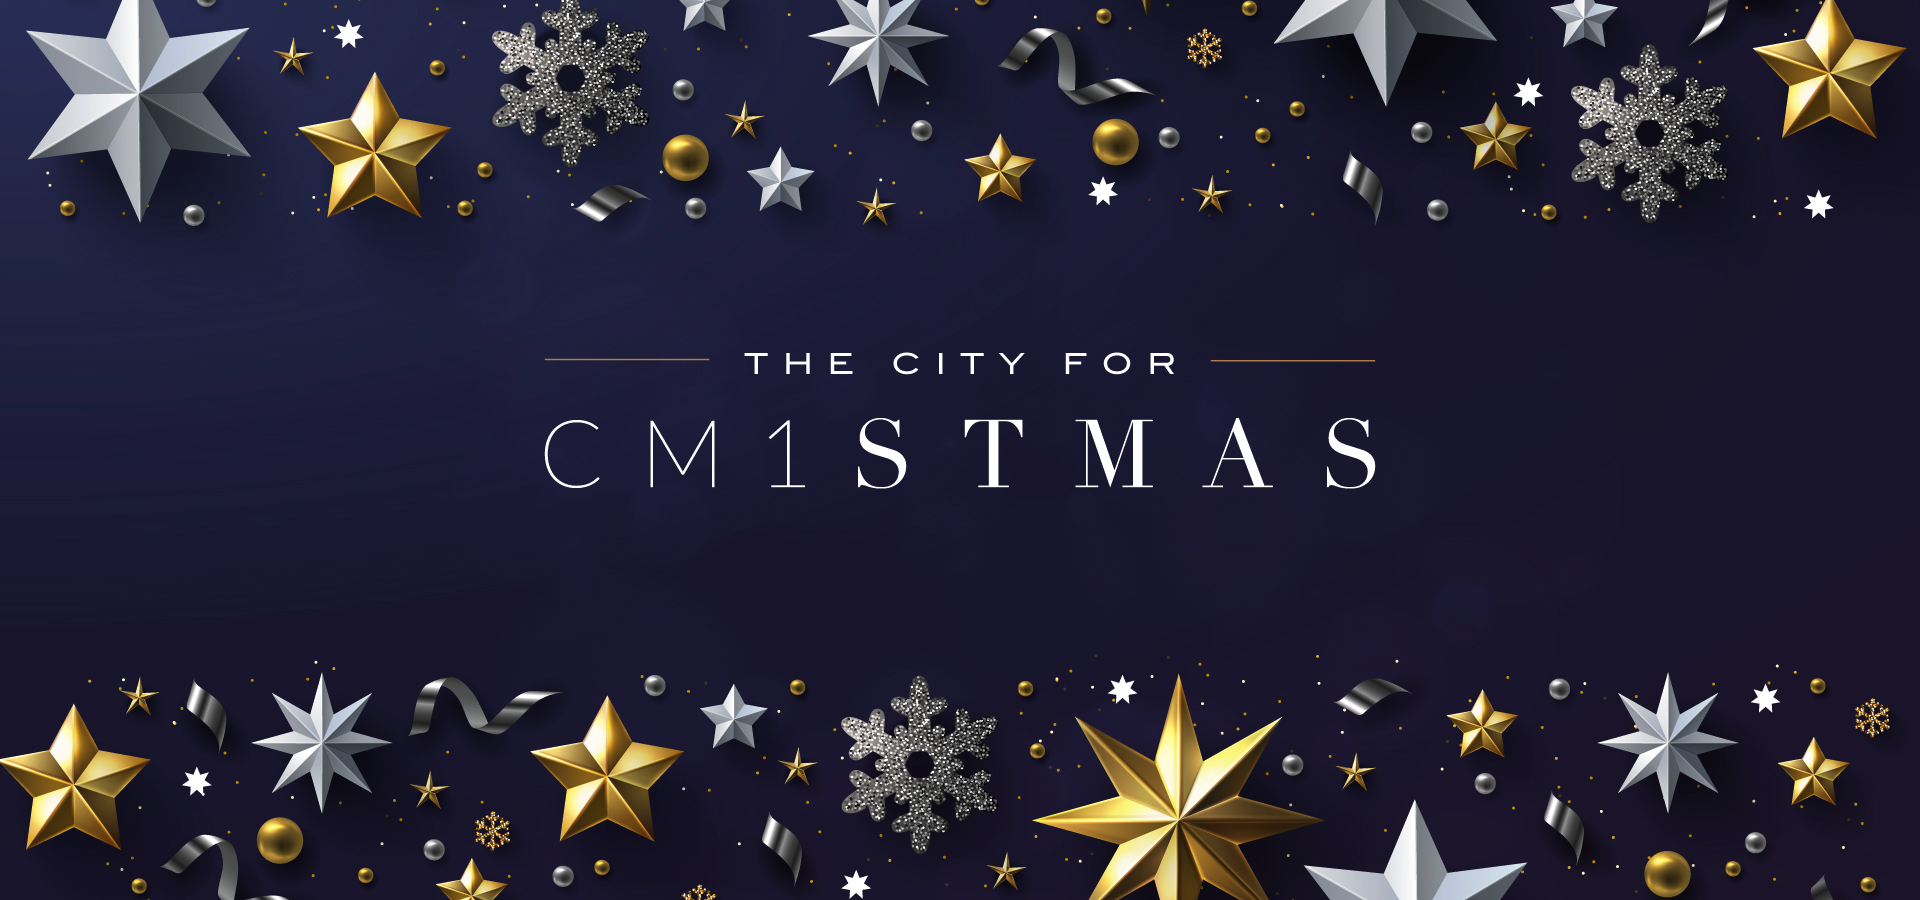 CM1stmas Chelmsford Christmas graphic